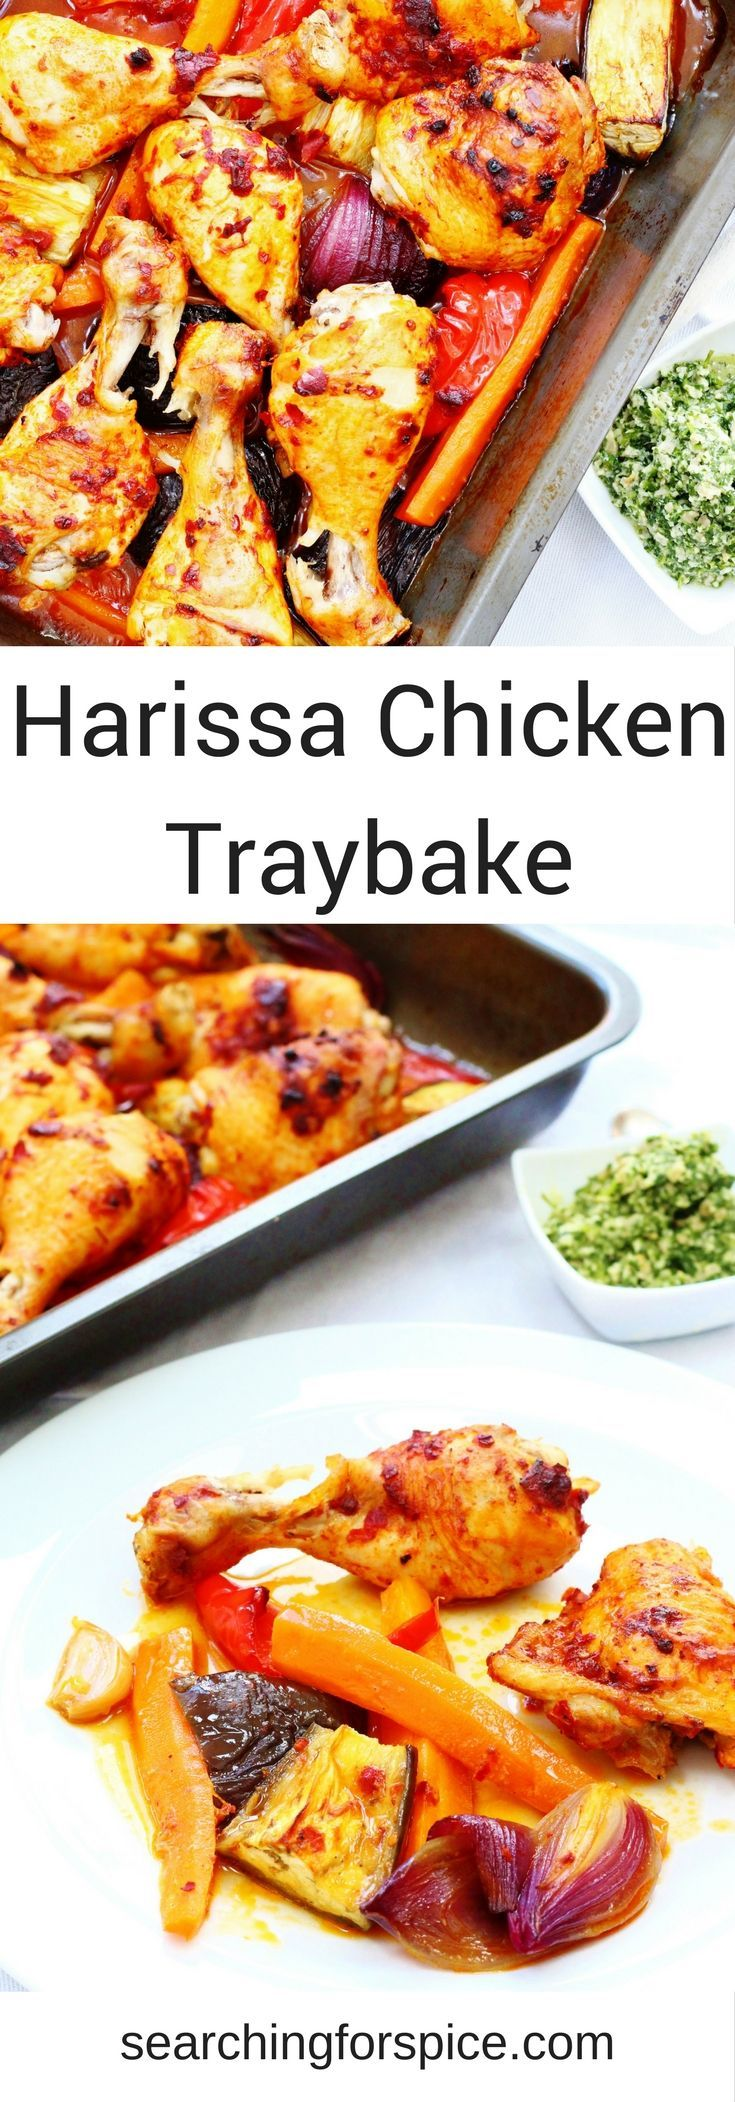 This harissa chicken traybake recipe is warming, comforting and healthy too, perfect for busy weeknights and delicious enough for weekend entertaining #harissarecipes #chickenrecipes #sheetpandinners #chickentraybake